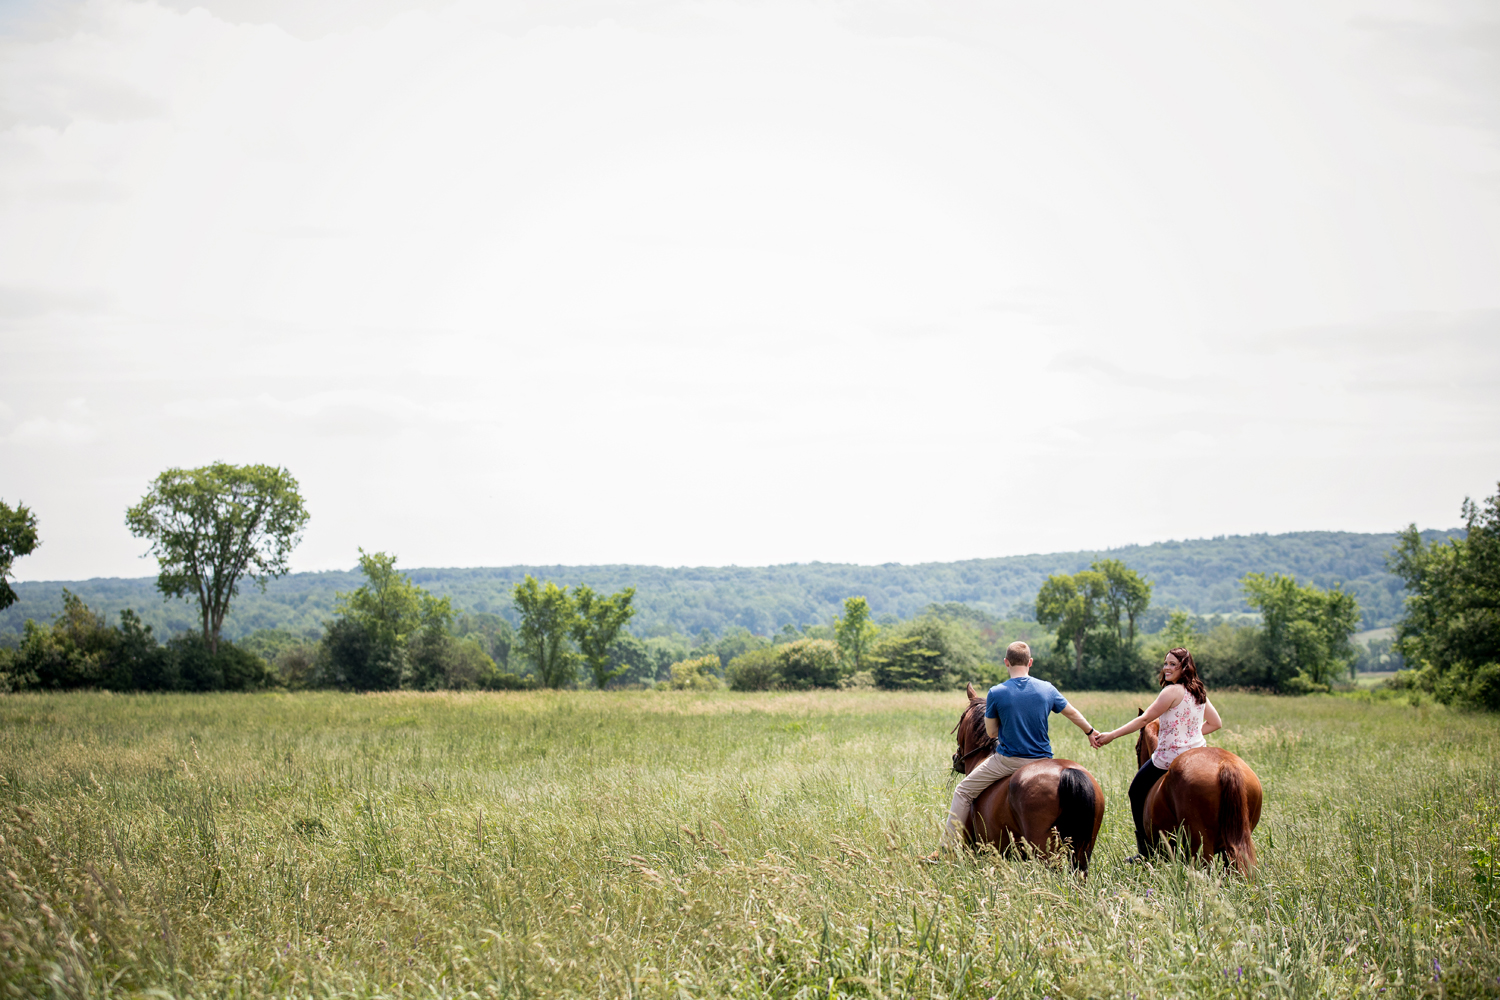 Saratoga NY Engagement and Horse Photography33.jpg